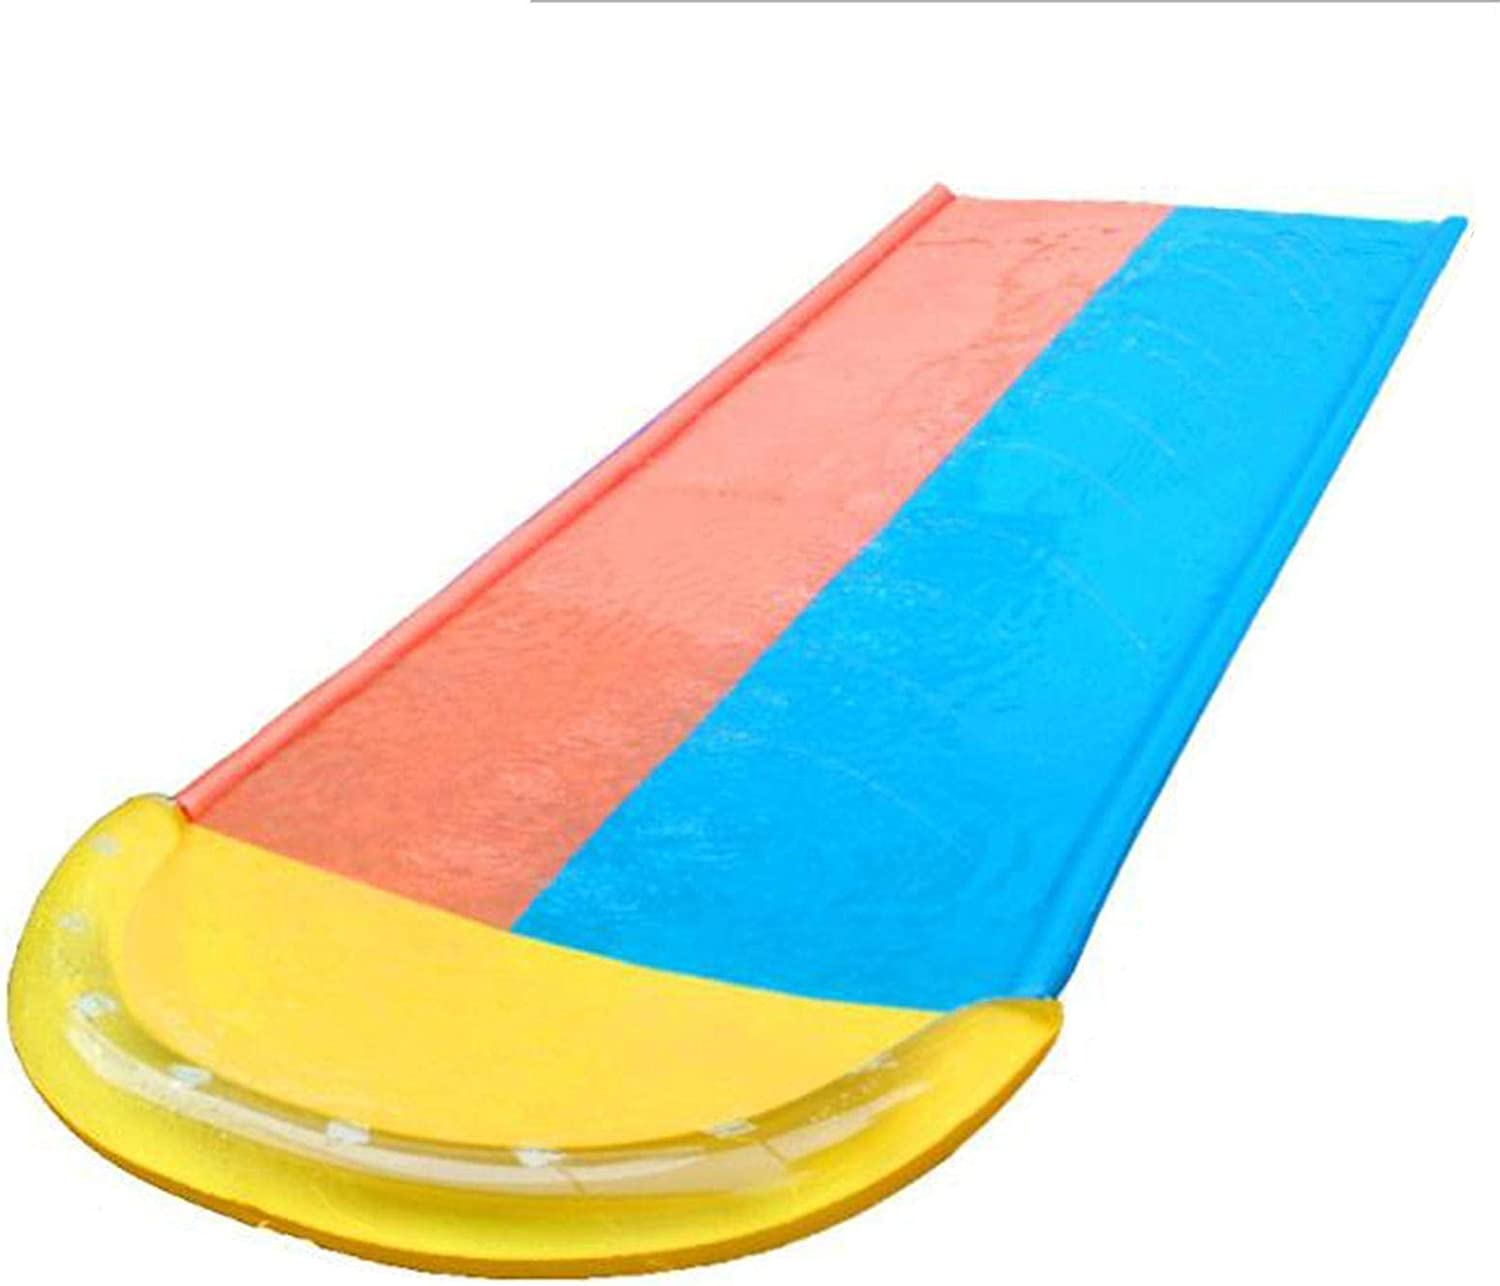 196.85 × 59.06inch Lawn low-pricing Water Slide 2 National uniform free shipping and B Slip Slides with